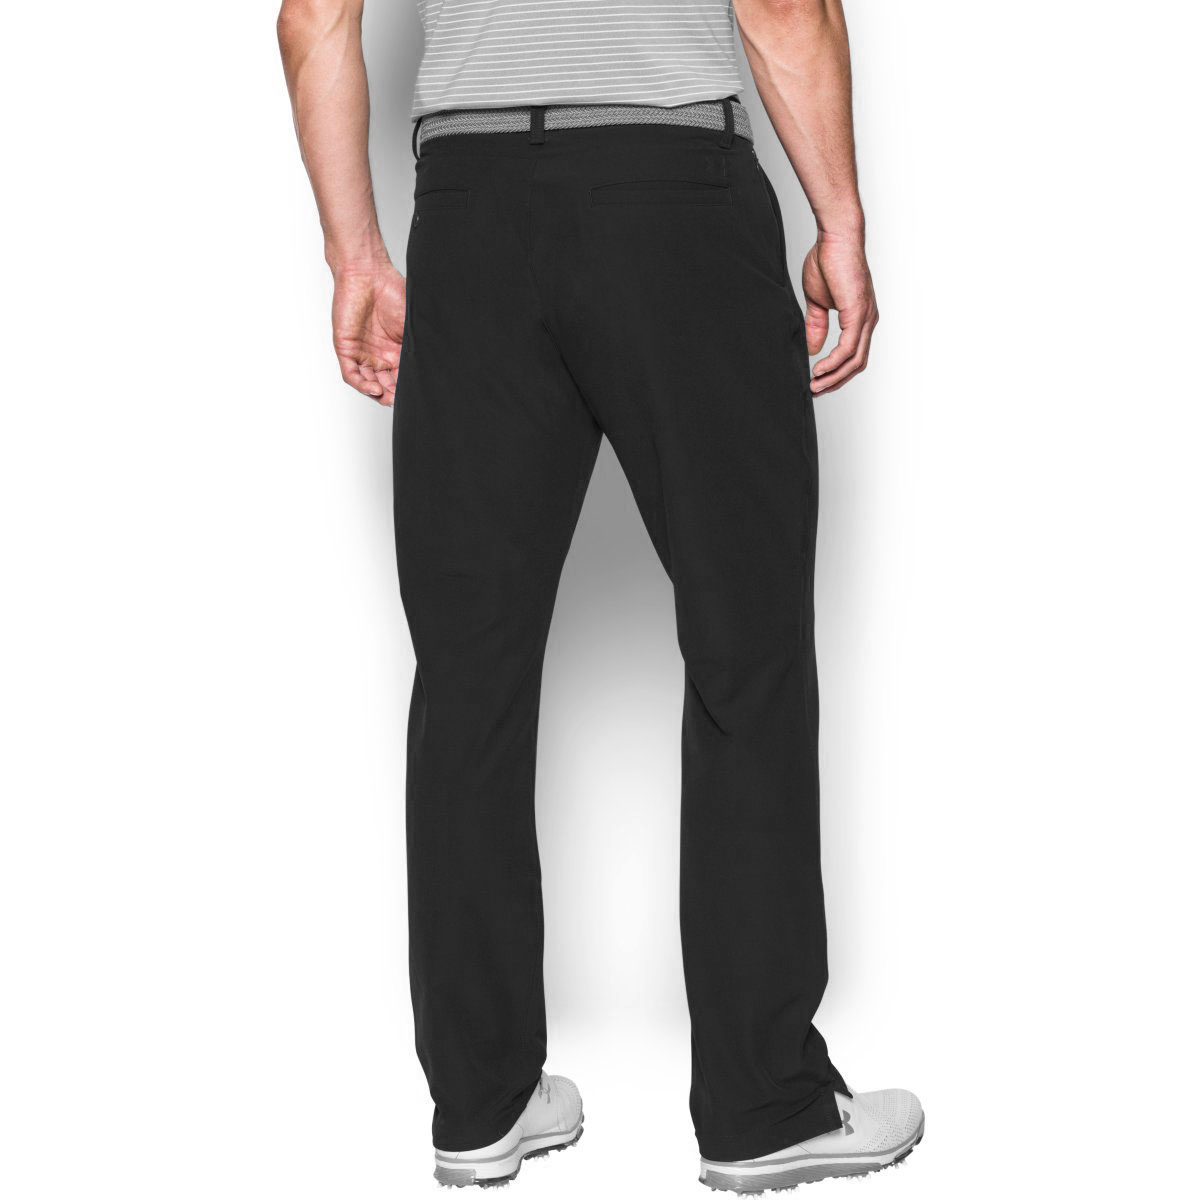 Under-Armour-Mens-Match-Play-ColdGear-Infrared-Taper-Golf-Trousers-52-OFF-RRP thumbnail 11